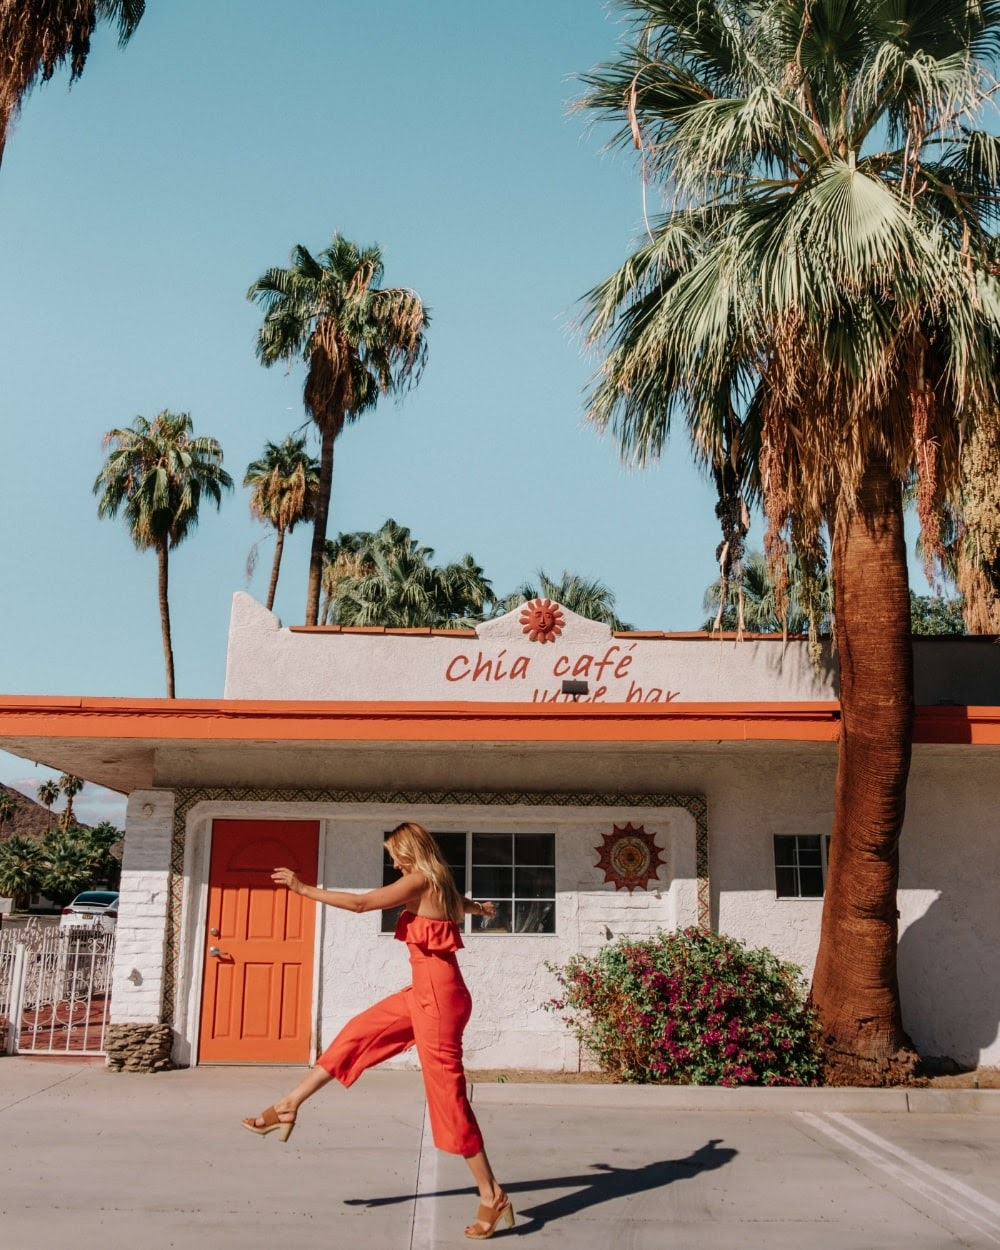 Exploring all of the unique restaurants and shops along Palm Canyon Drive. Chia cafe is known to be an Instagrammable spot to take pictures at. Image courtesy of kaylchip.com.